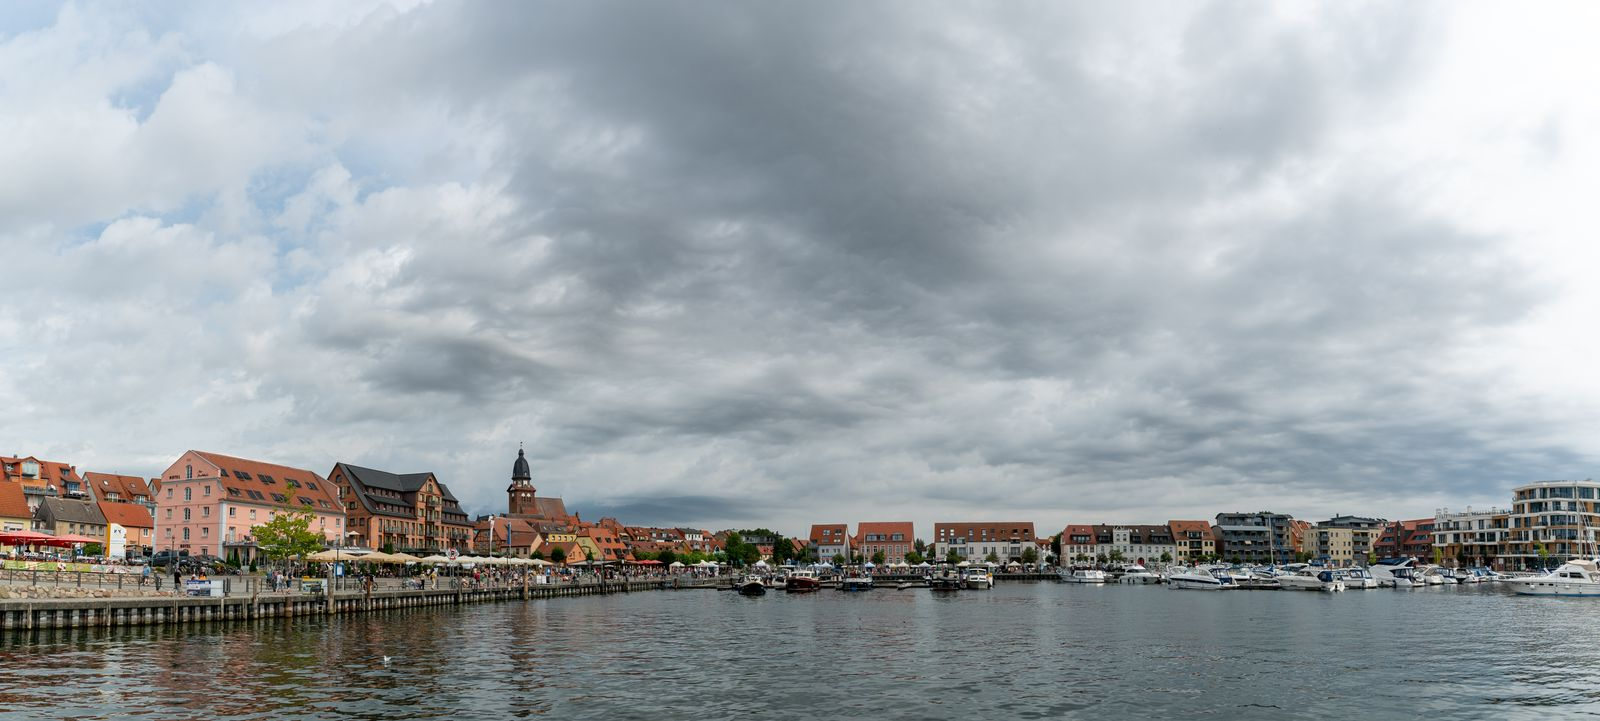 the harbor and old town of Waren on Lake Mueritz in Germany